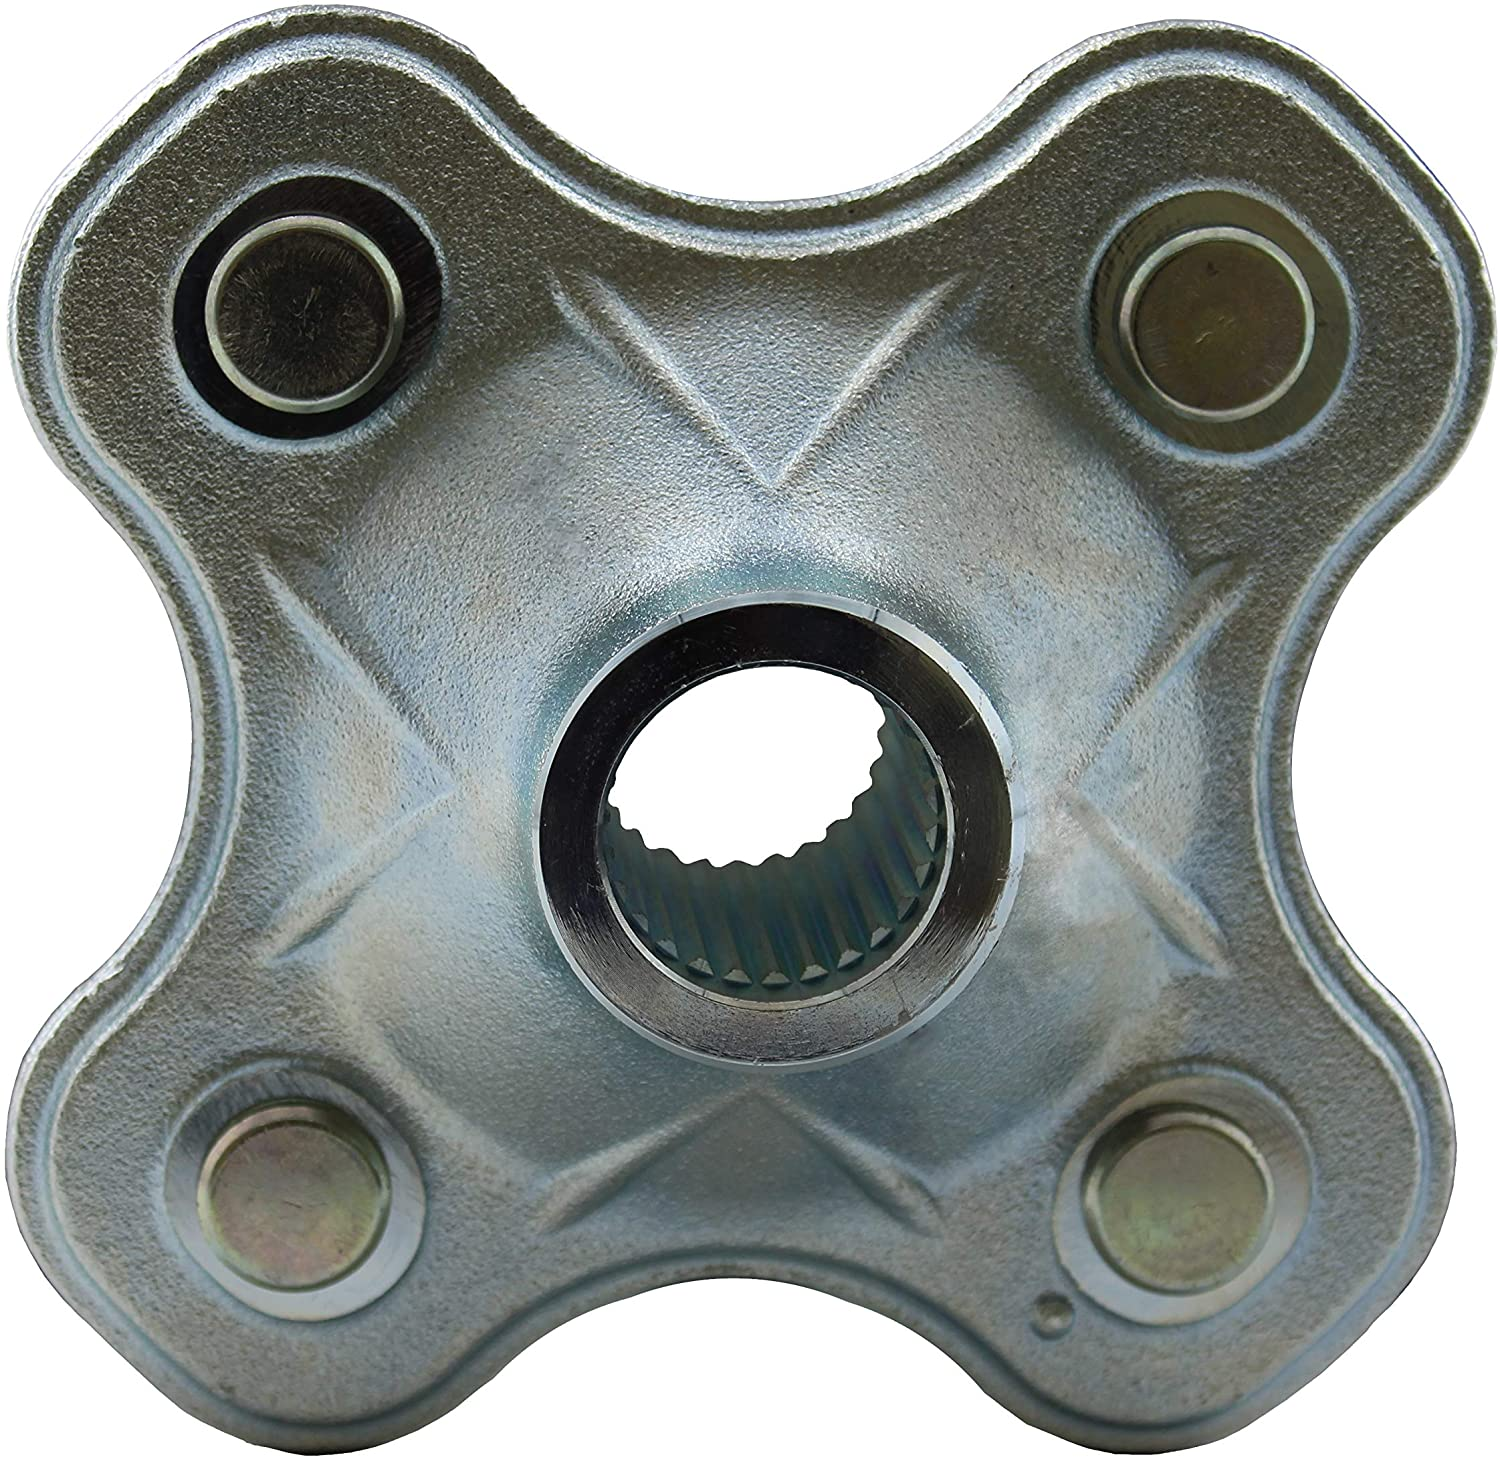 East Lake Axle Rear Wheel Axle Hub compatible with Yamaha ATV's 2HR-25383-01-00 / 2HR-25383-00-00